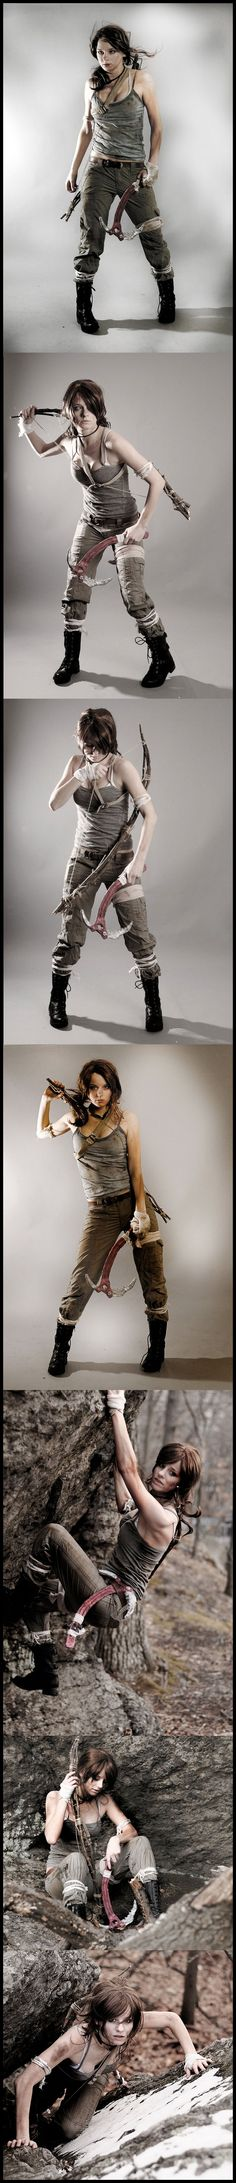 Lara Croft #Cosplay by Donttellme.